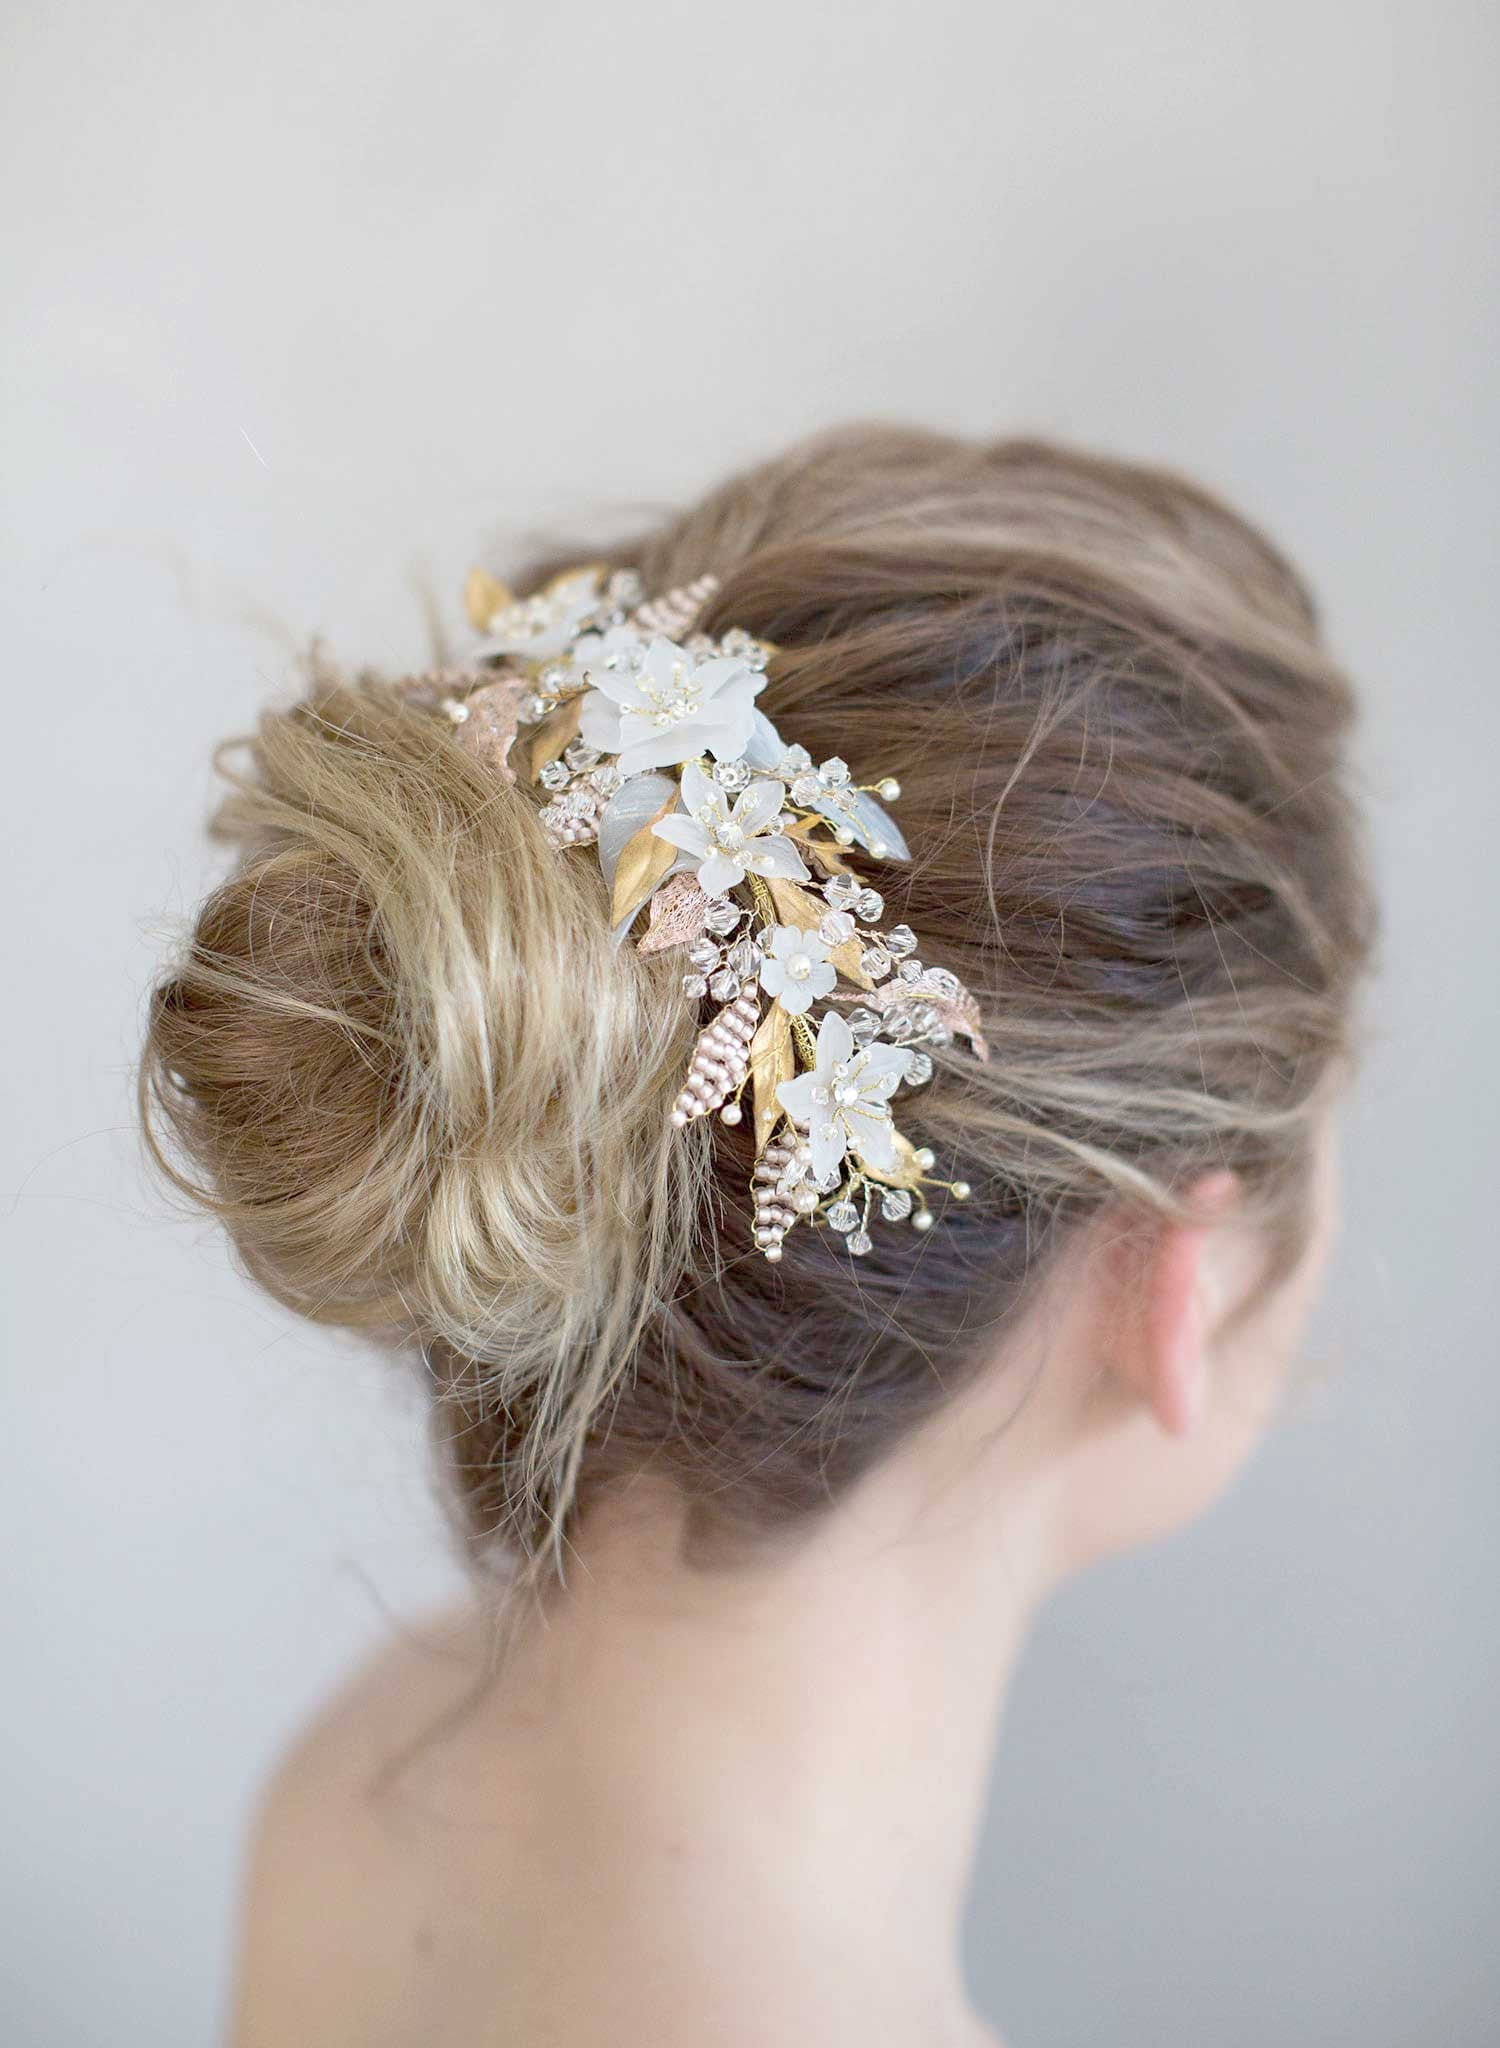 Sugary sweet floral headpiece - Style #766